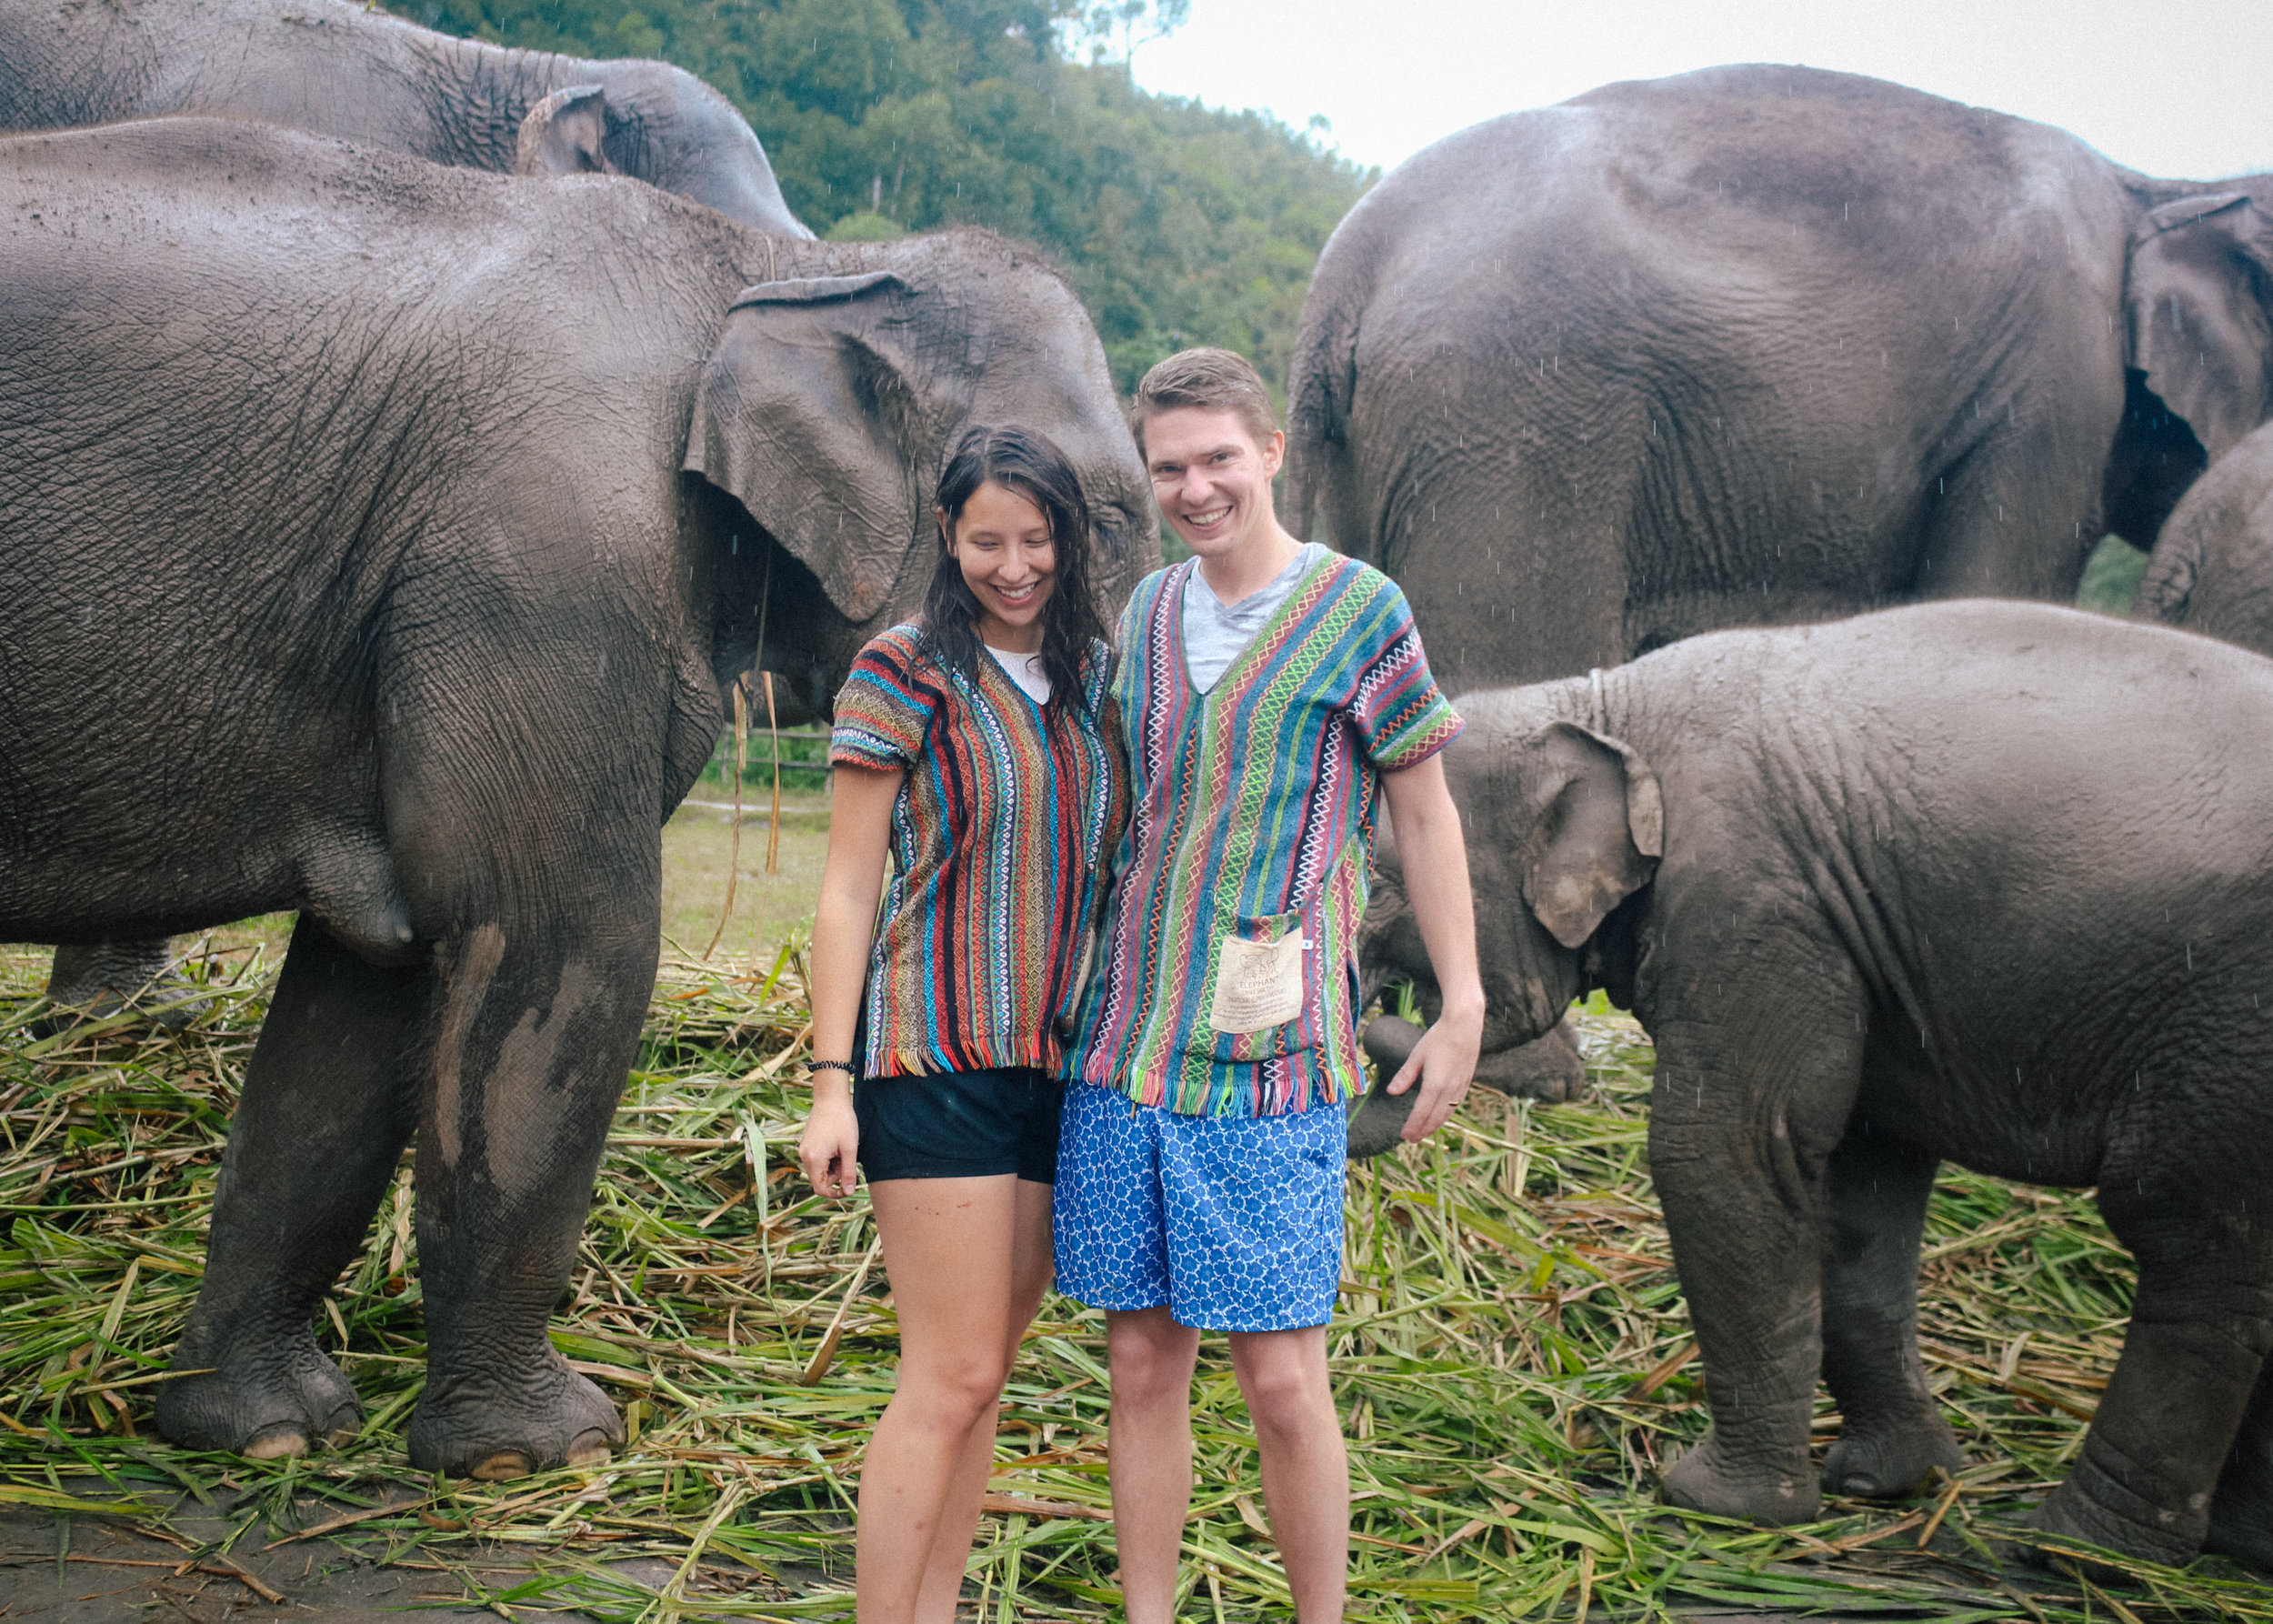 Peter and I with the elephants